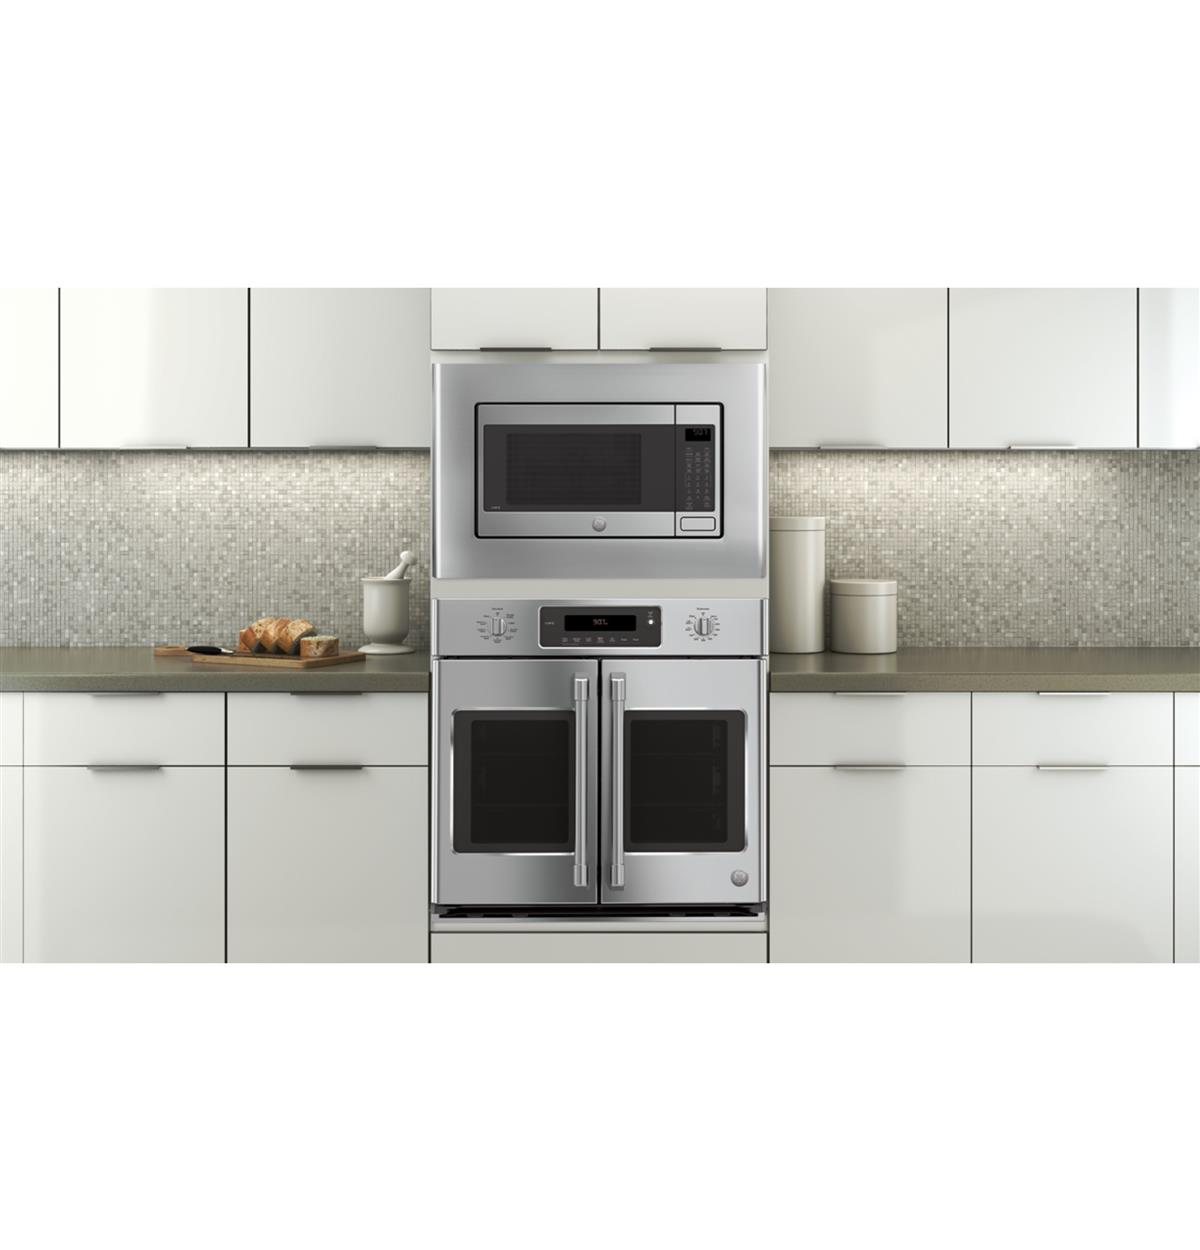 Ceb1599sjss Overview Ge Caf 233 Series 1 5 Cu Ft